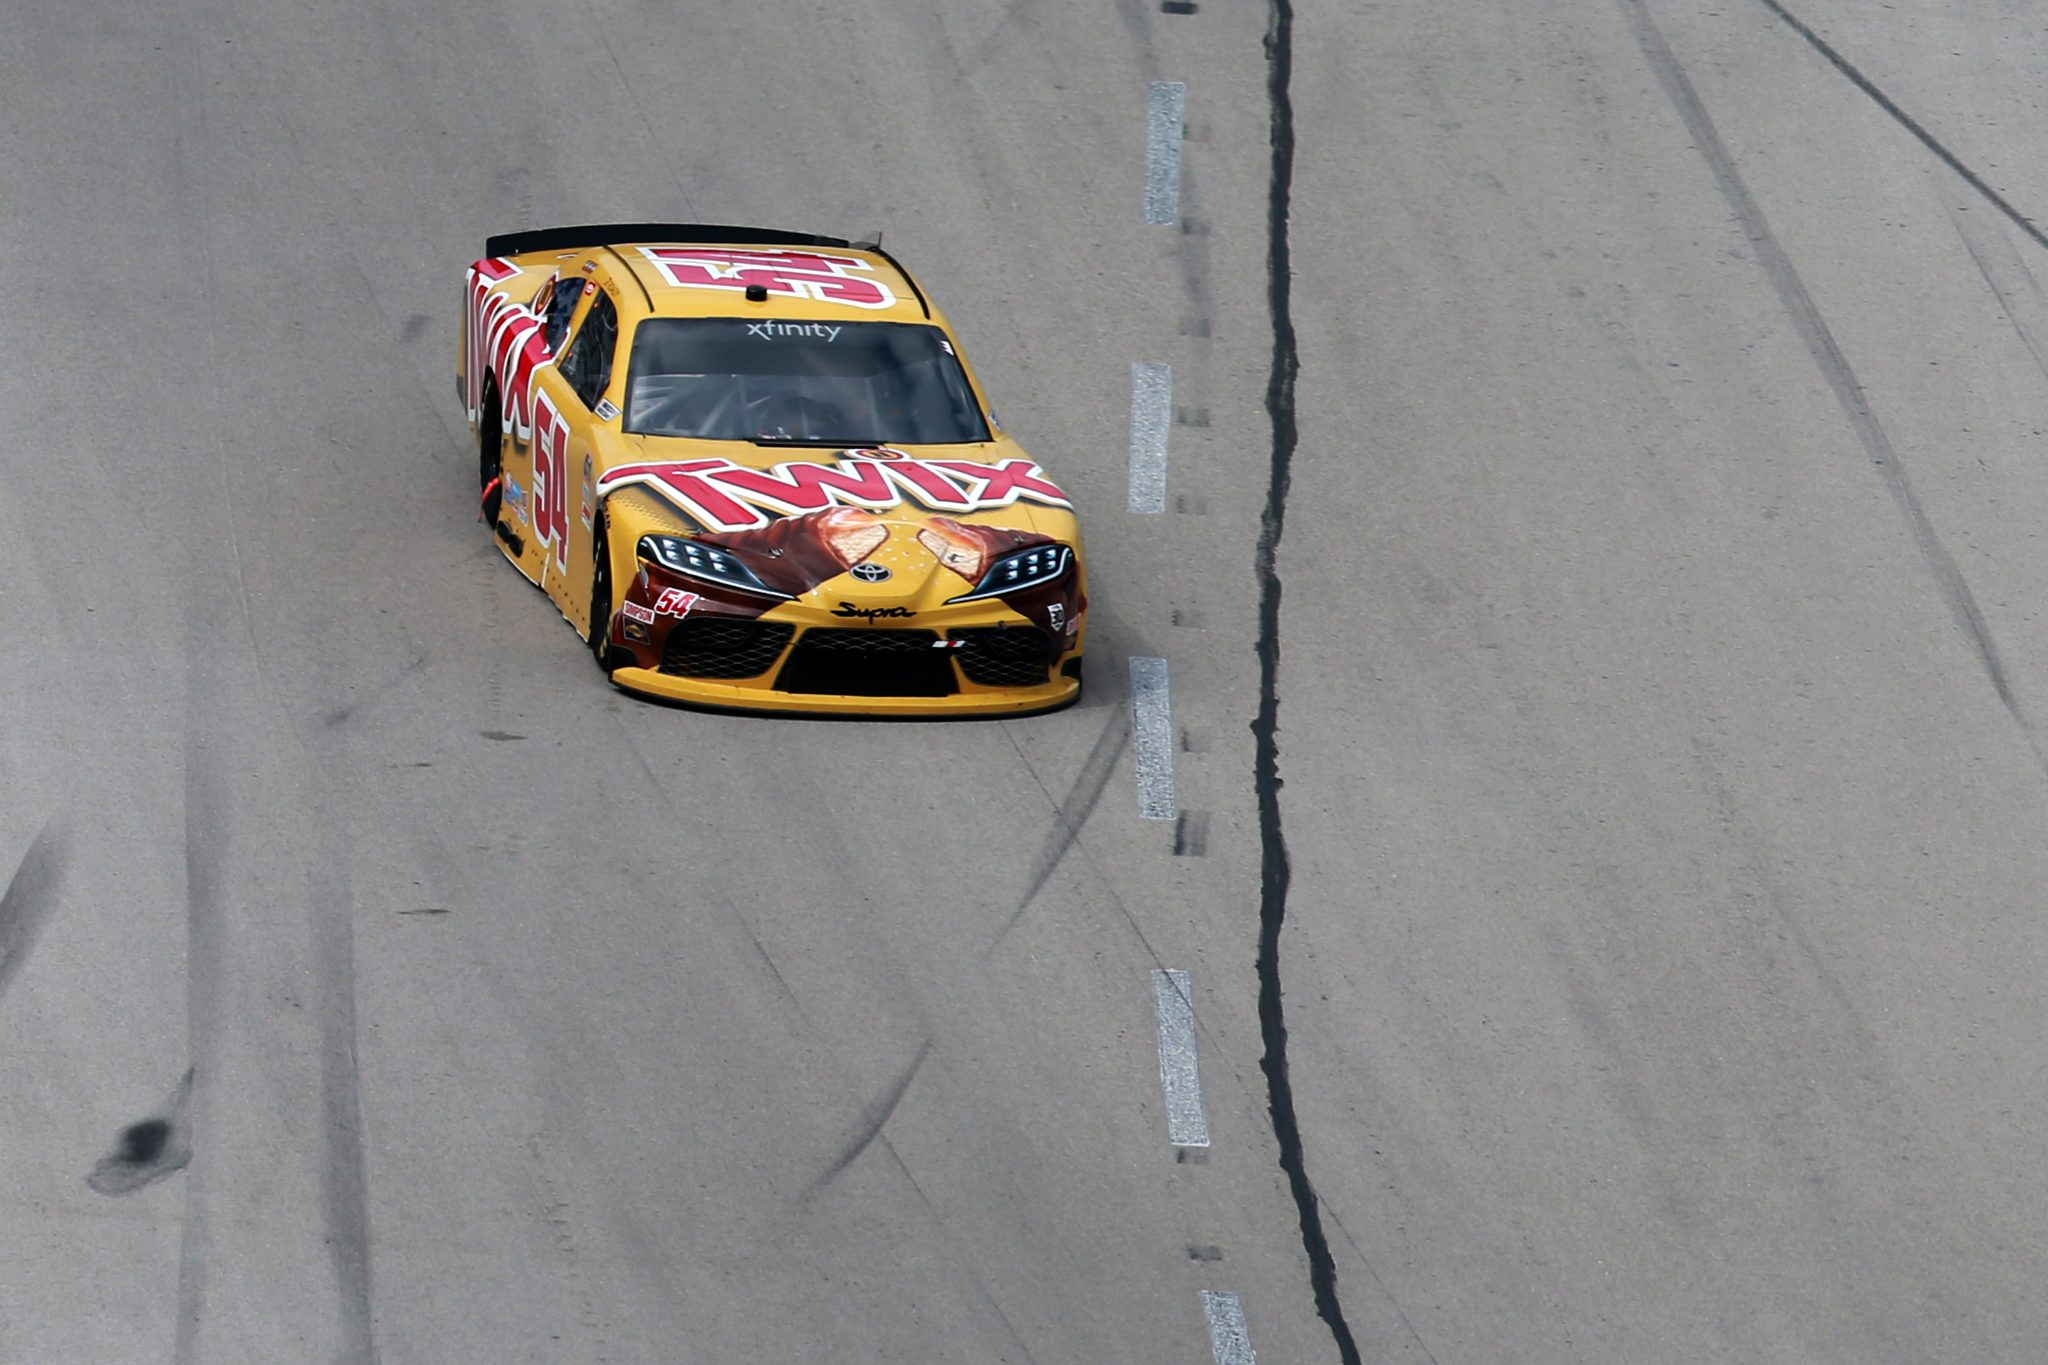 FORT WORTH, TEXAS - JUNE 12: Kyle Busch, driver of the #54 Twix Toyota, drives during the NASCAR Xfinity Series Alsco Uniforms 250 at Texas Motor Speedway on June 12, 2021 in Fort Worth, Texas. (Photo by Sean Gardner/Getty Images) | Getty Images